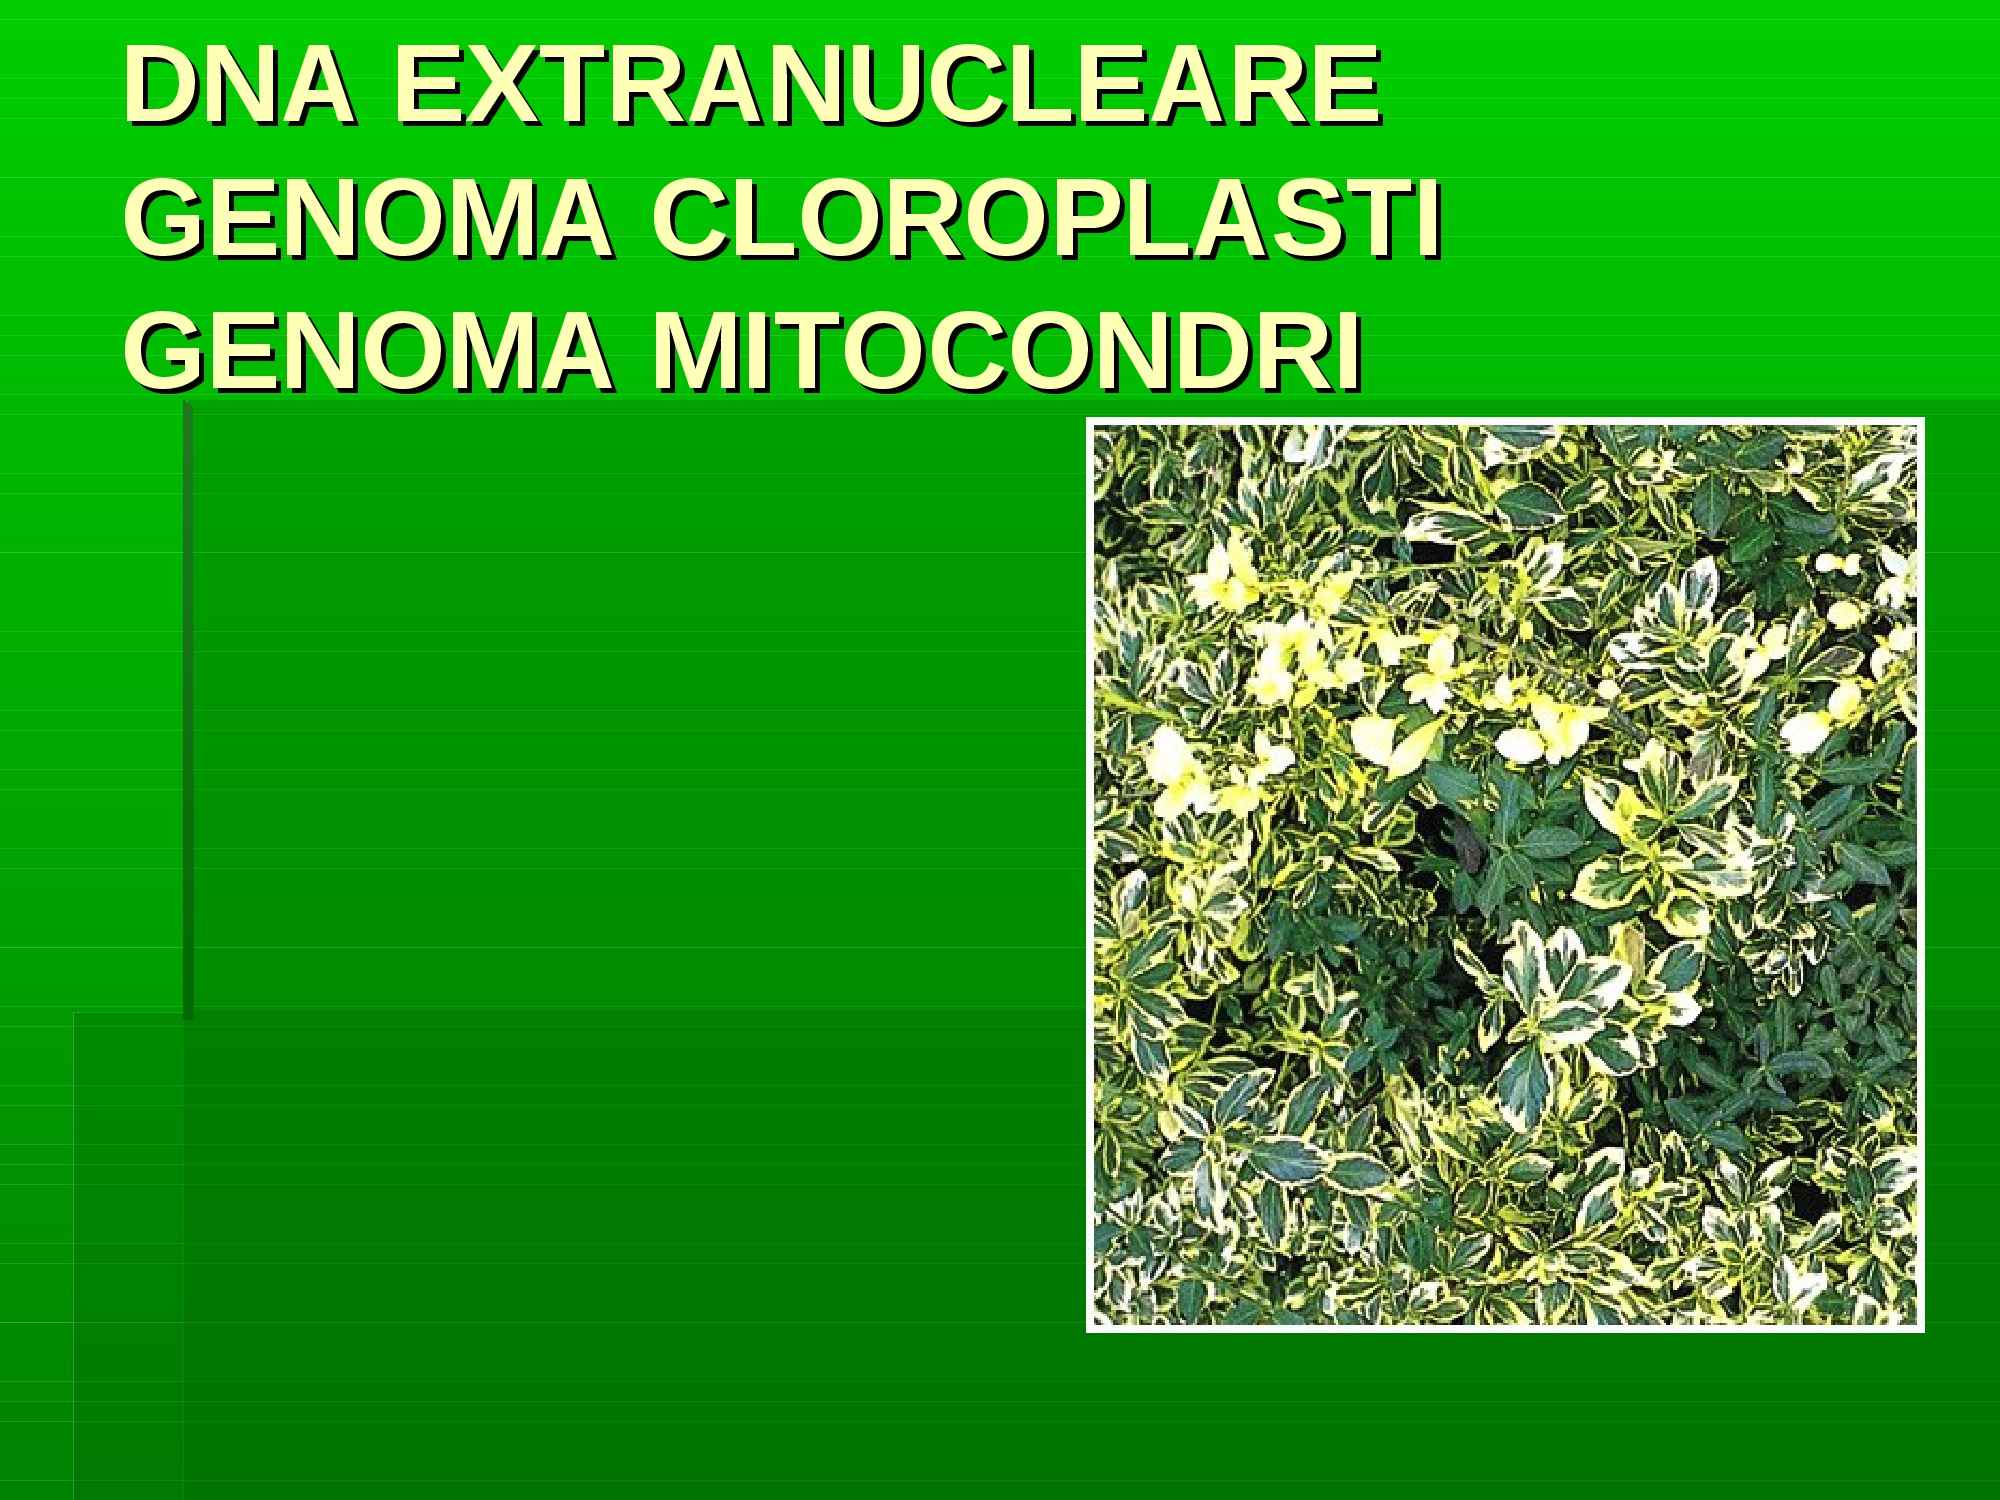 DNA extranucleare - Mitocondri e cloroplasti